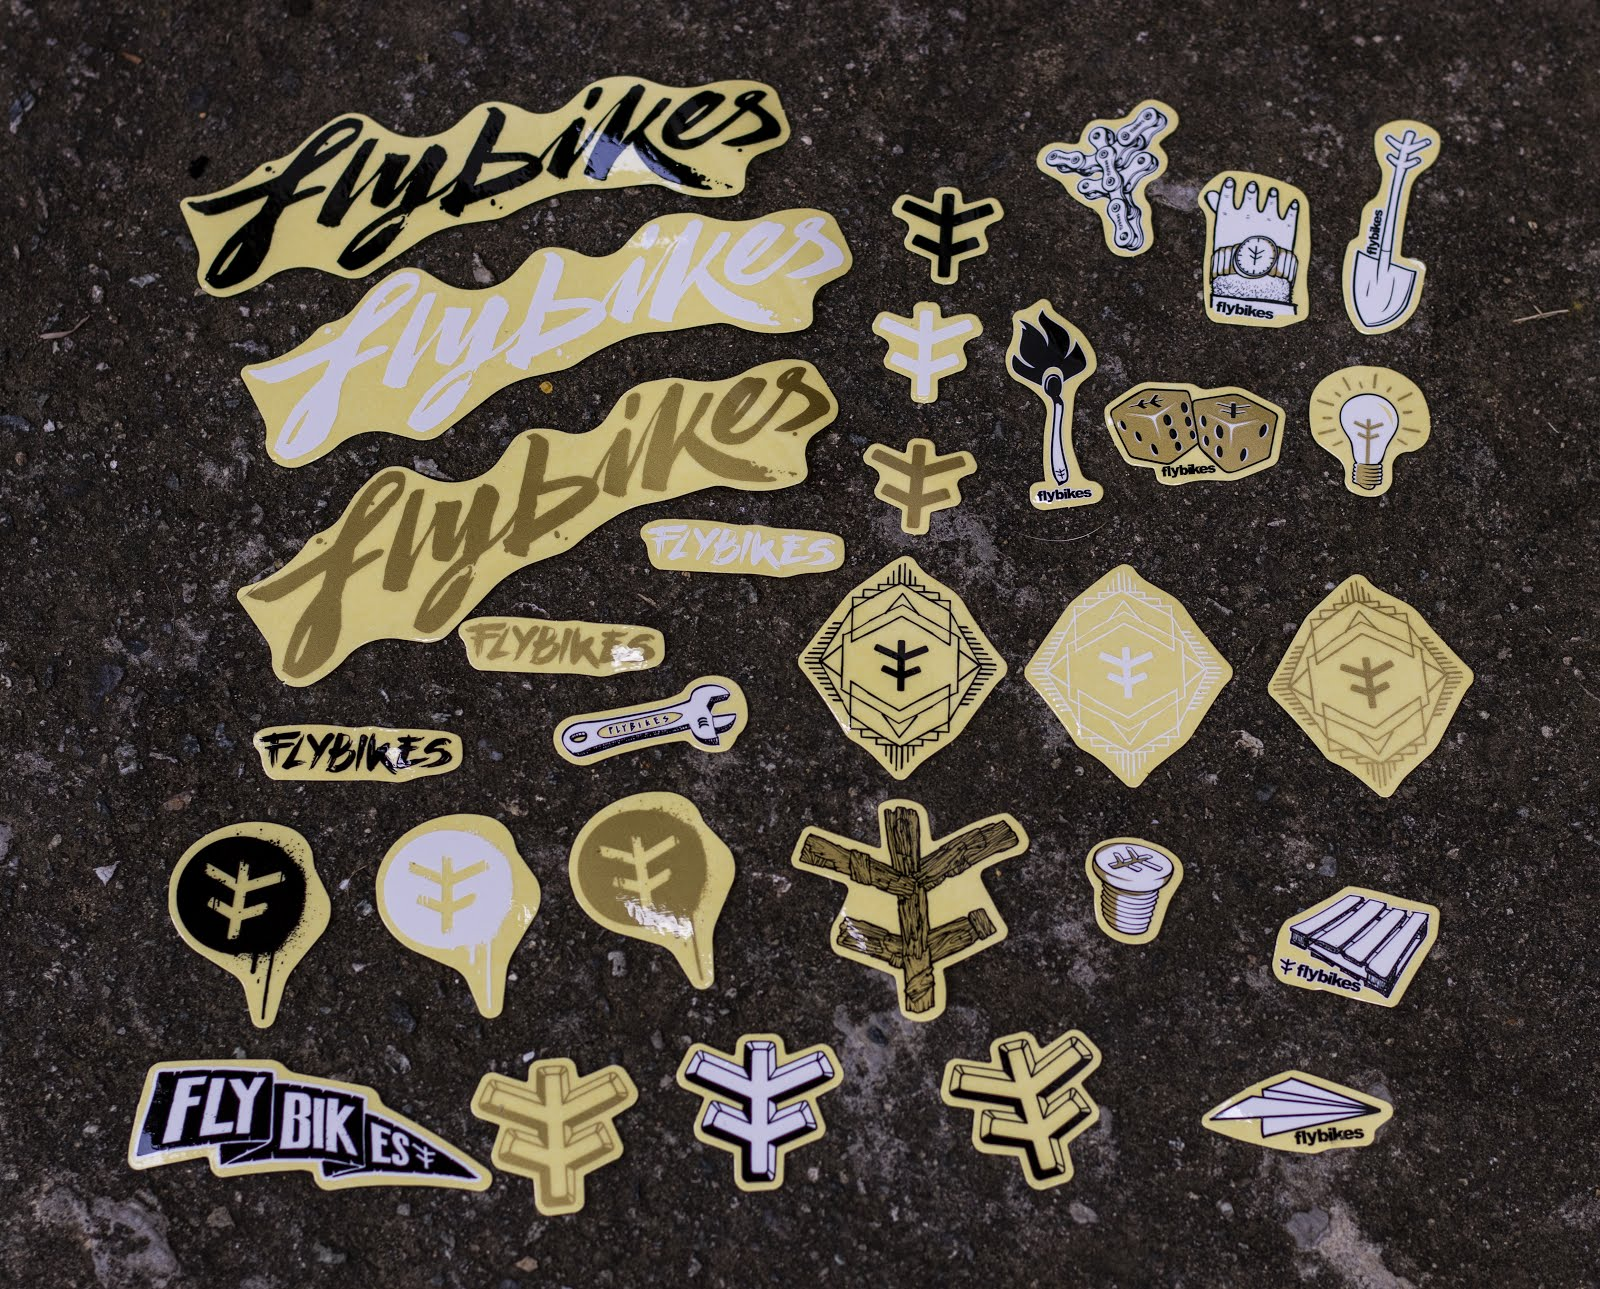 Pack de stickers FLYBIKES $20.000